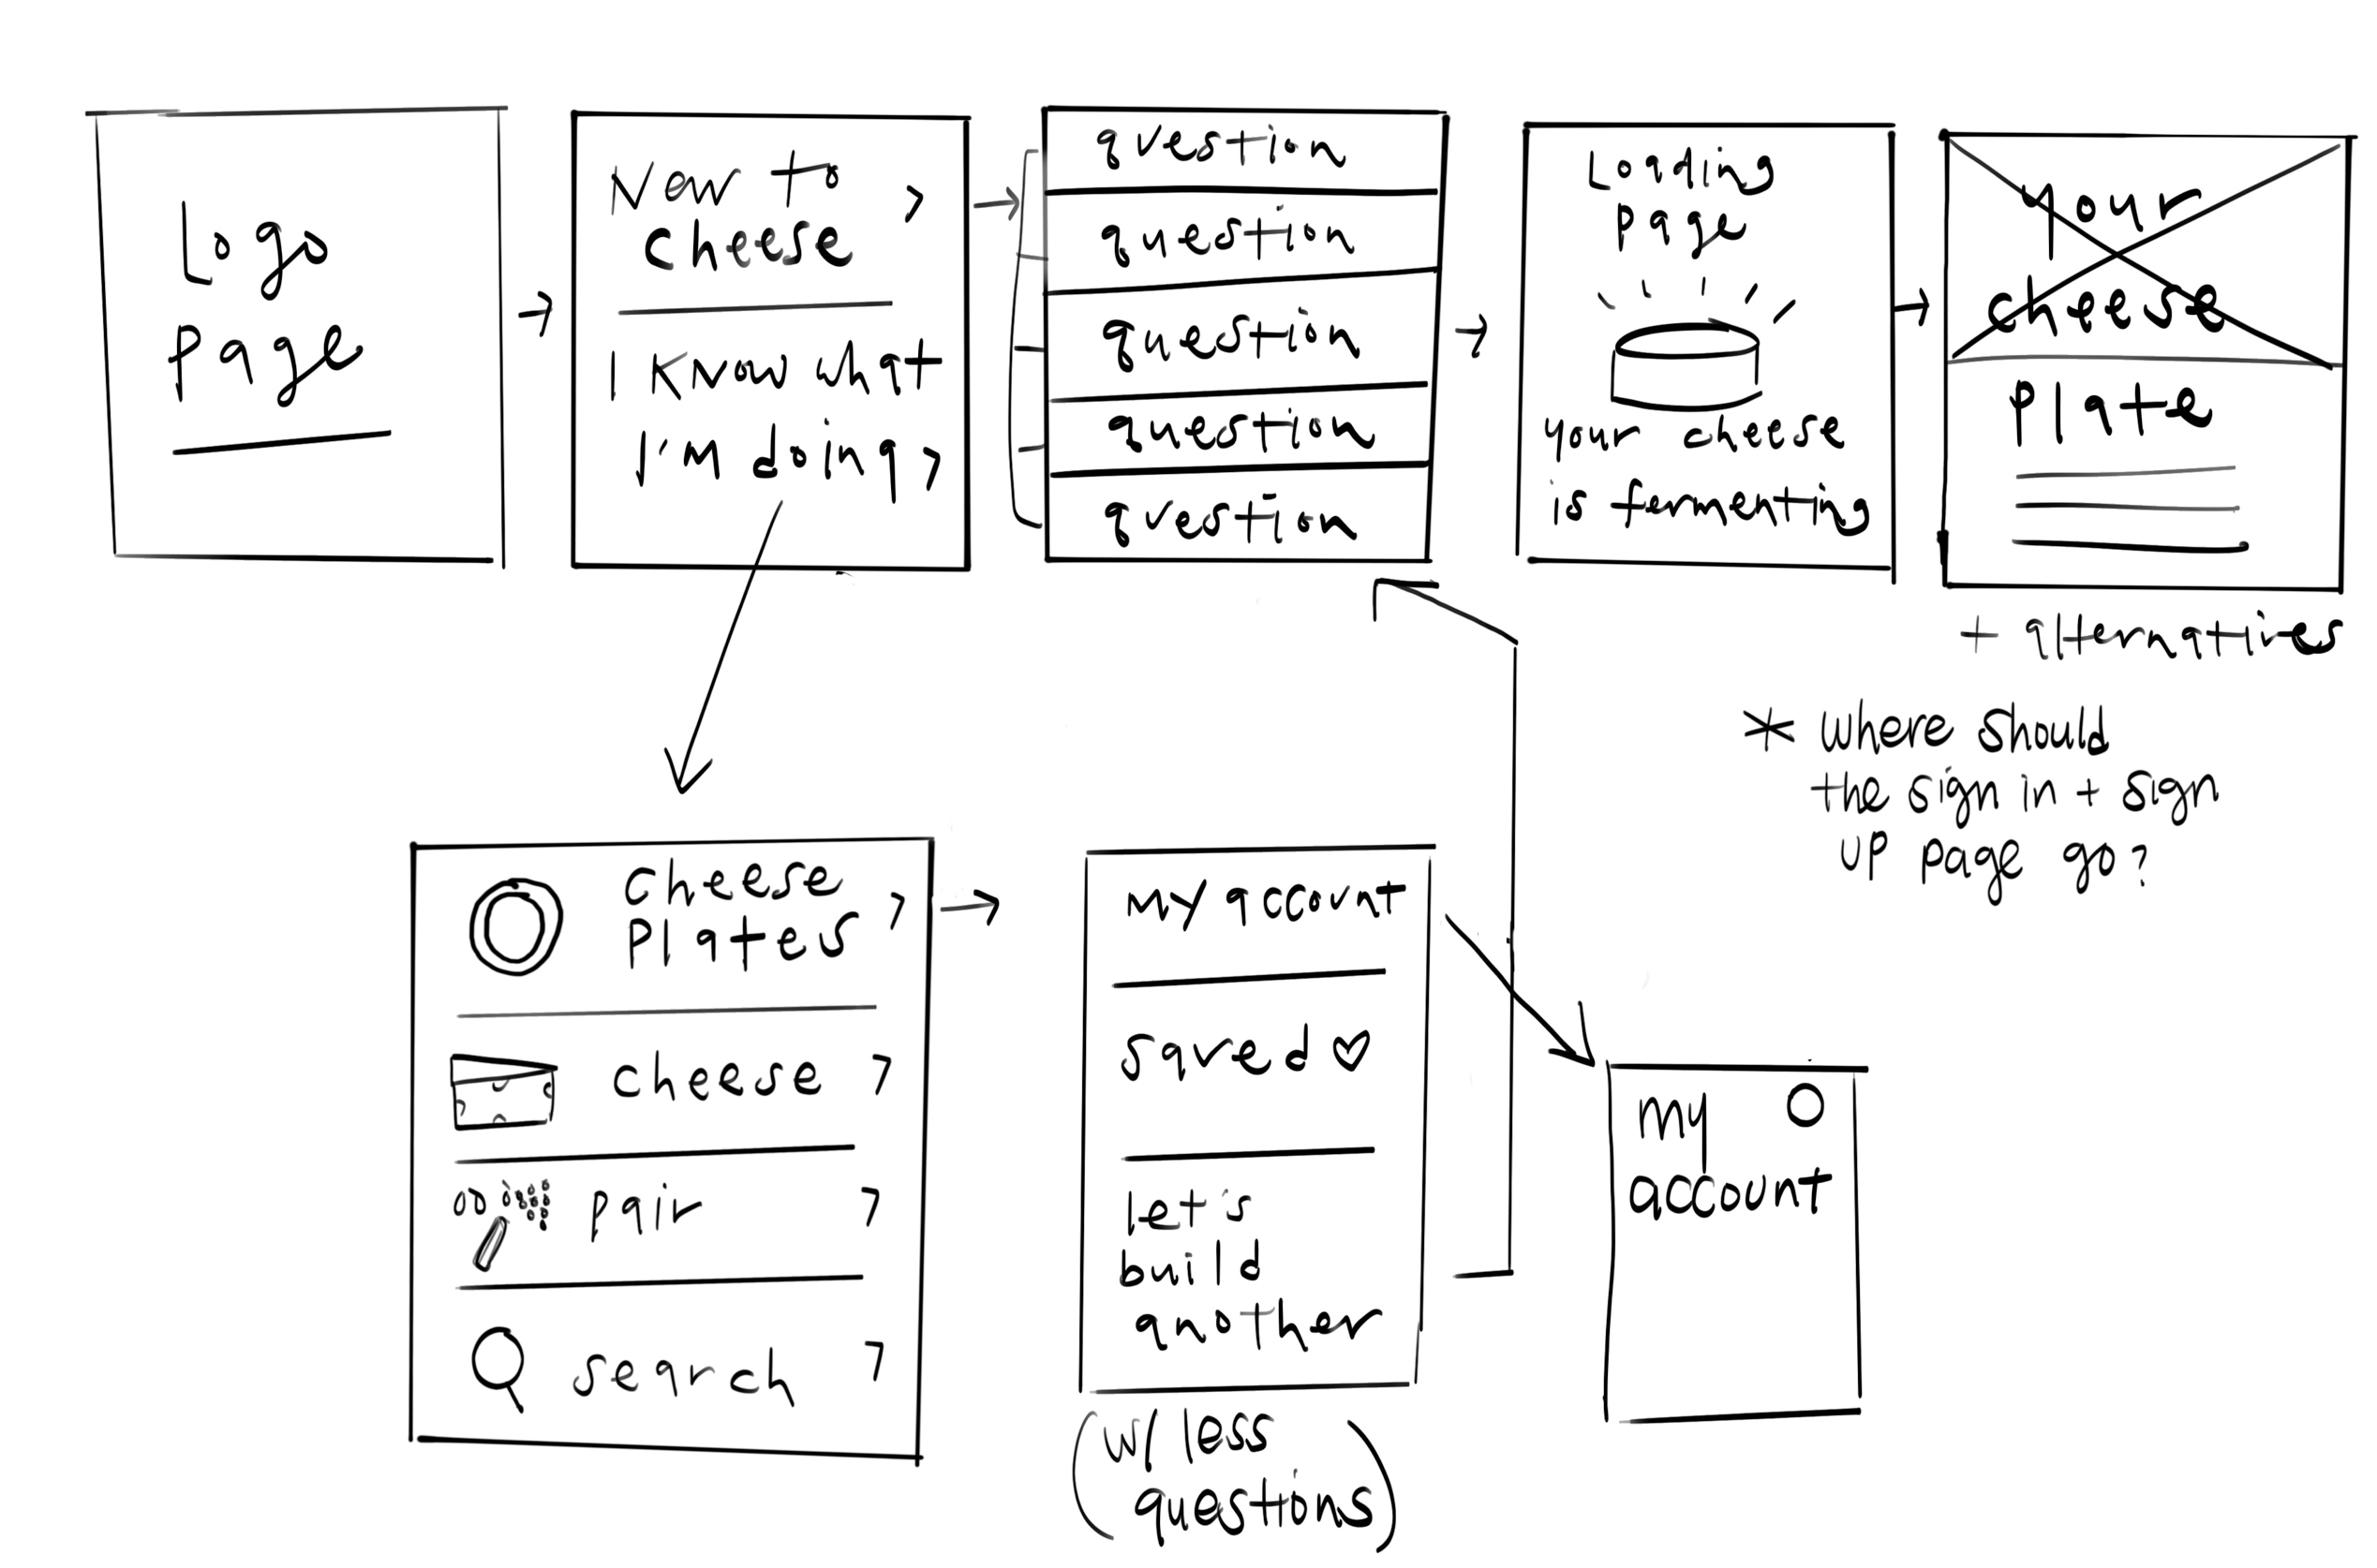 userflow sketch